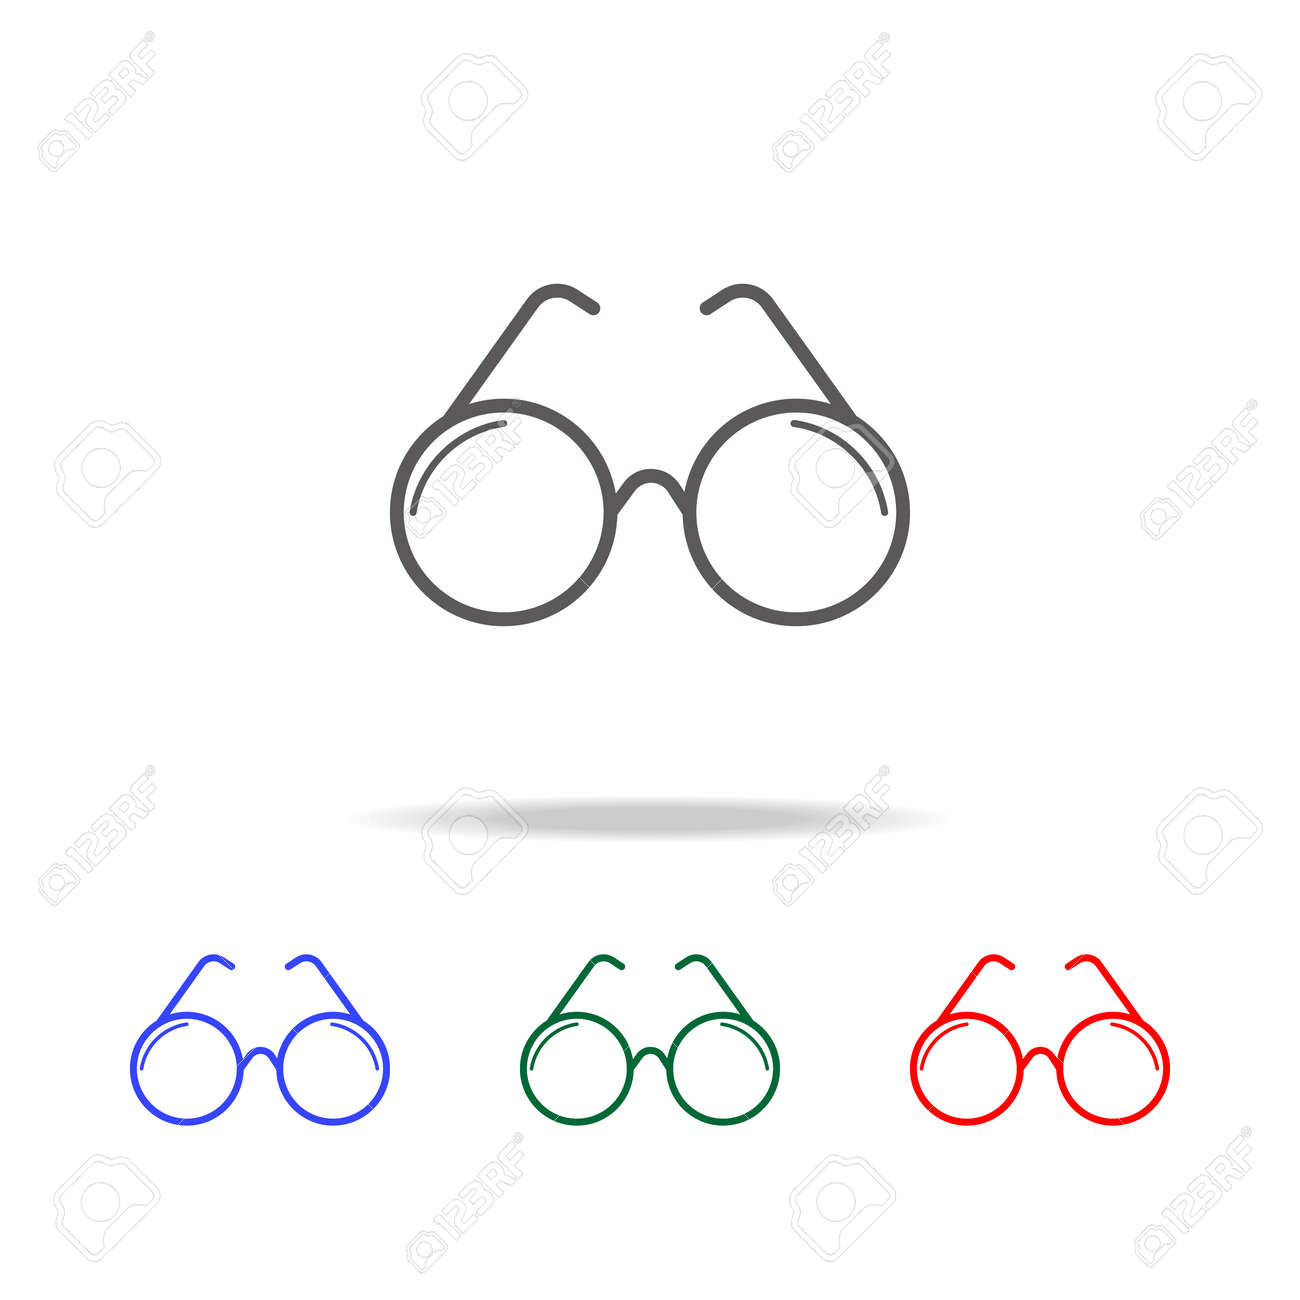 c39192297838 optical glasses icon. Elements in multi colored icons for mobile concept  and web apps.